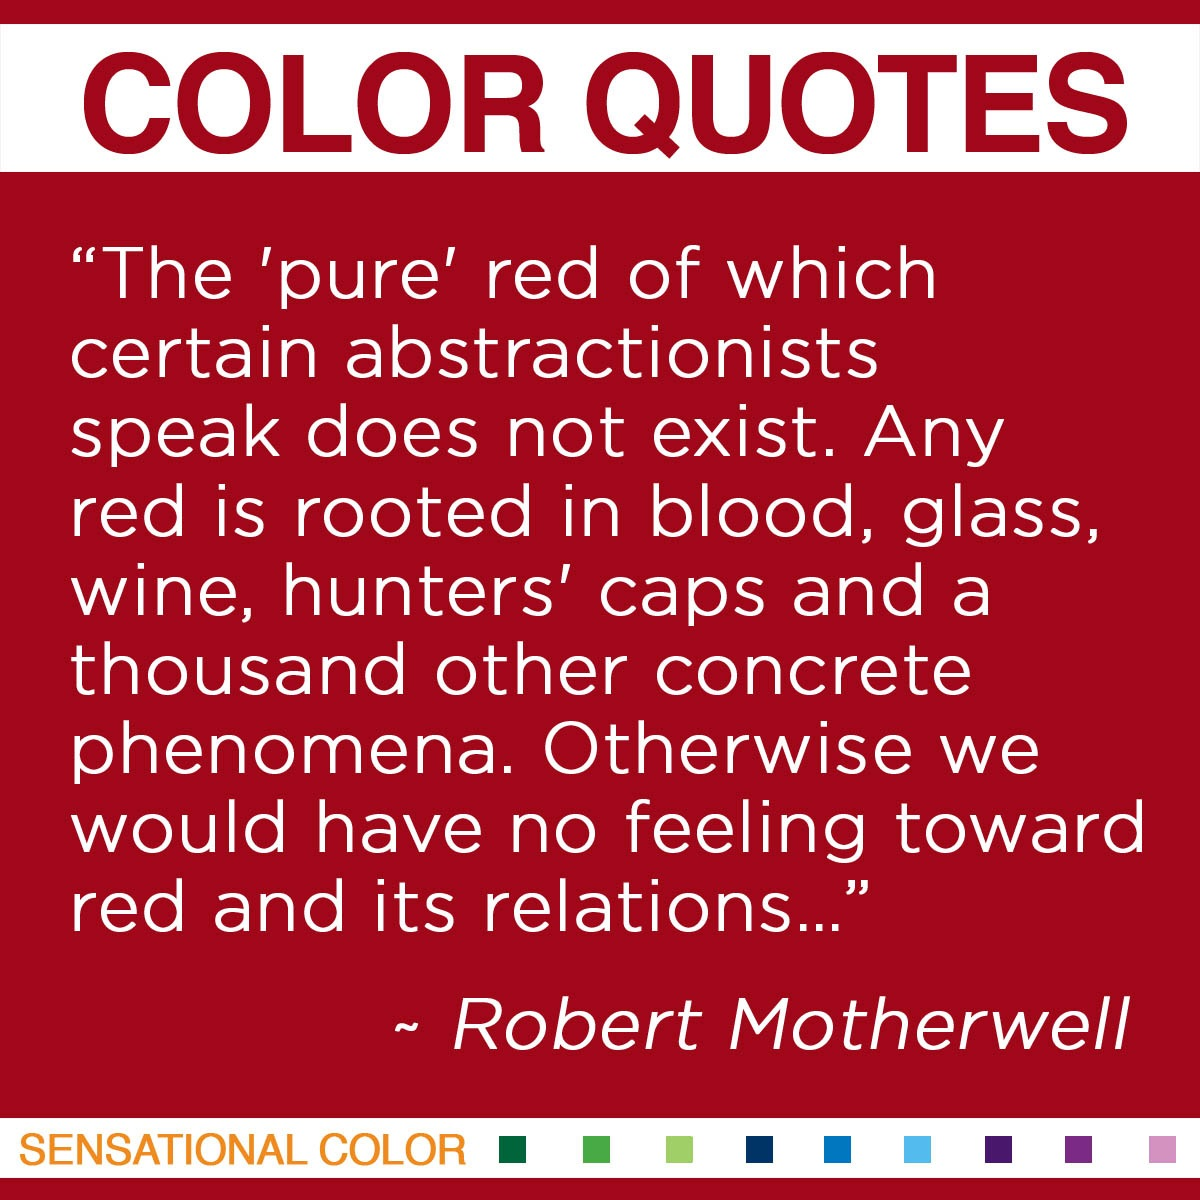 """The 'pure' red of which certain abstractionists speak does not exist. Any red is rooted in blood, glass, wine, hunters' caps and a thousand other concrete phenomena. Otherwise we would have no feeling toward red and its relations…."" - Robert Motherwell"